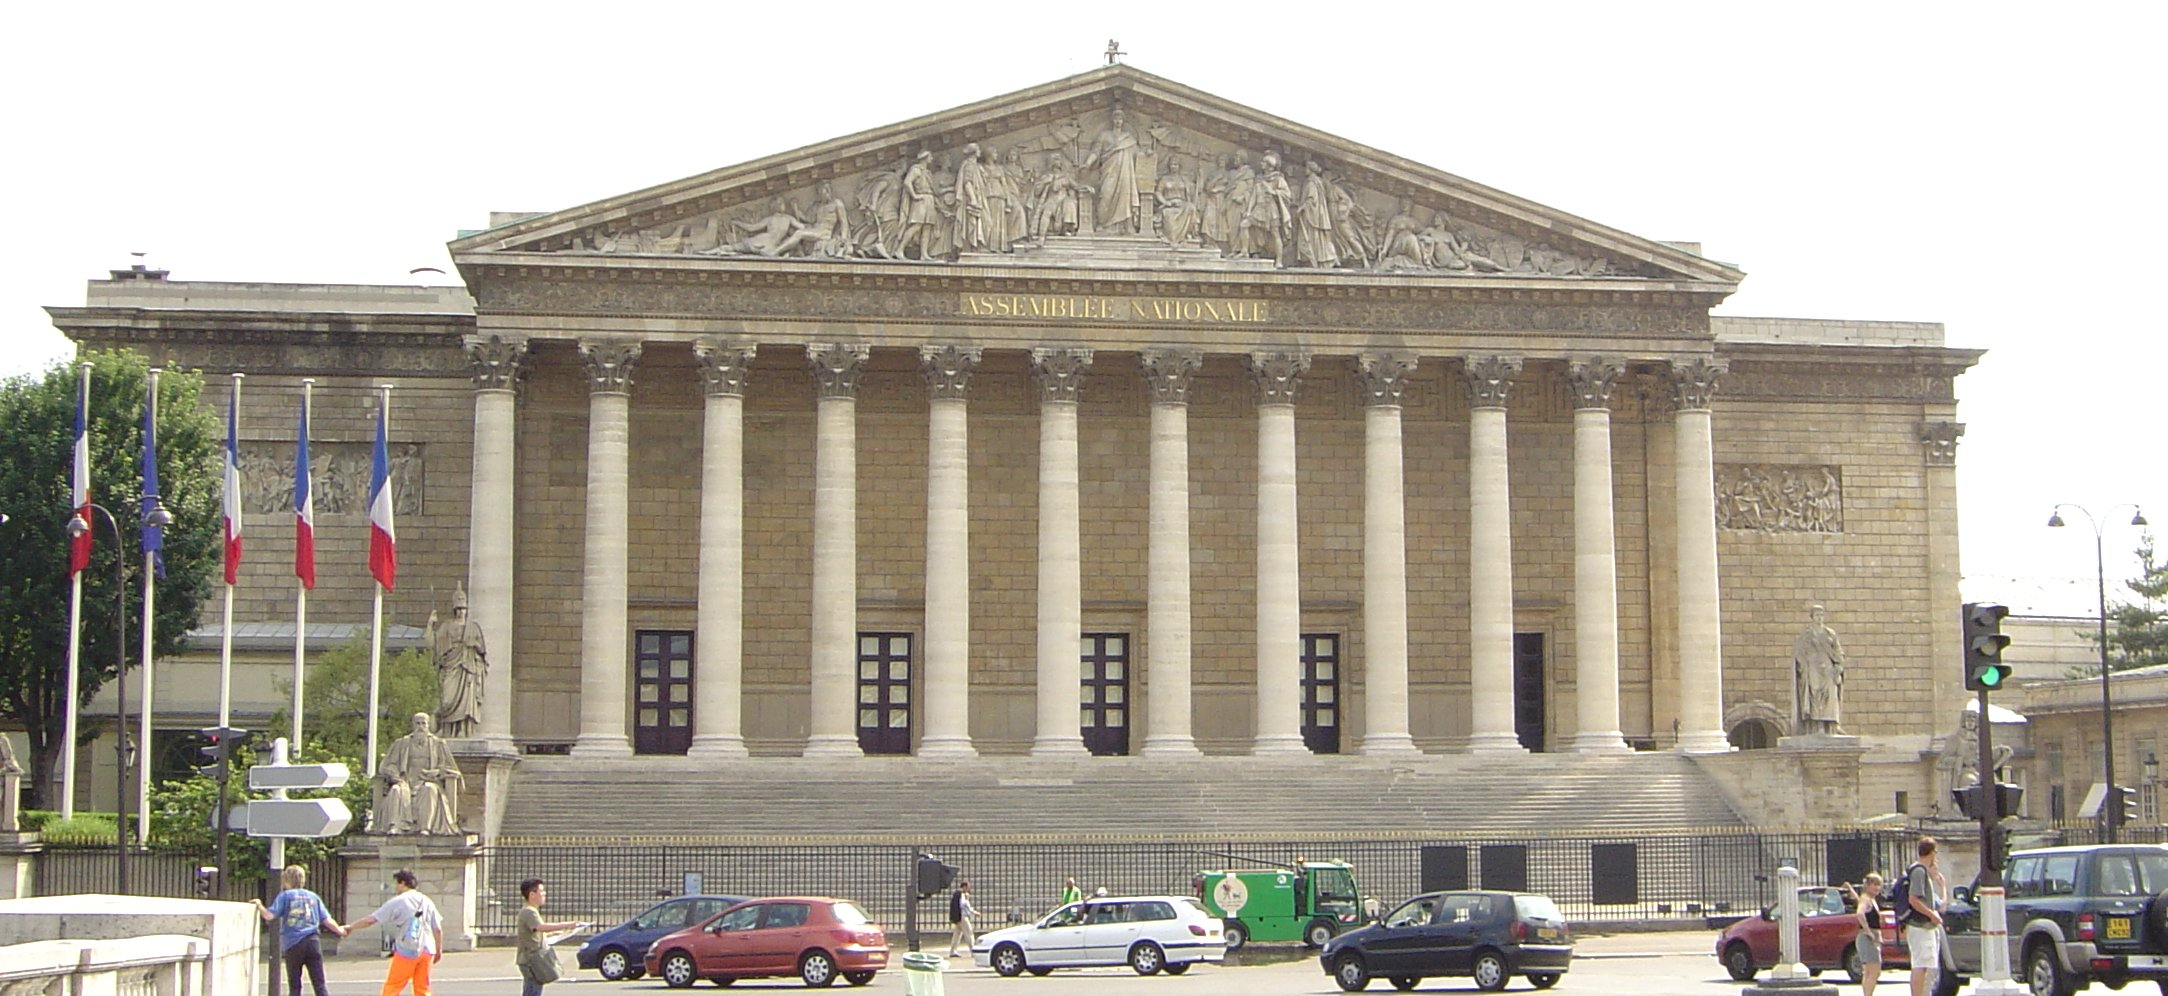 http://upload.wikimedia.org/wikipedia/commons/6/6c/Paris_Assemblee_Nationale_DSC00074.jpg